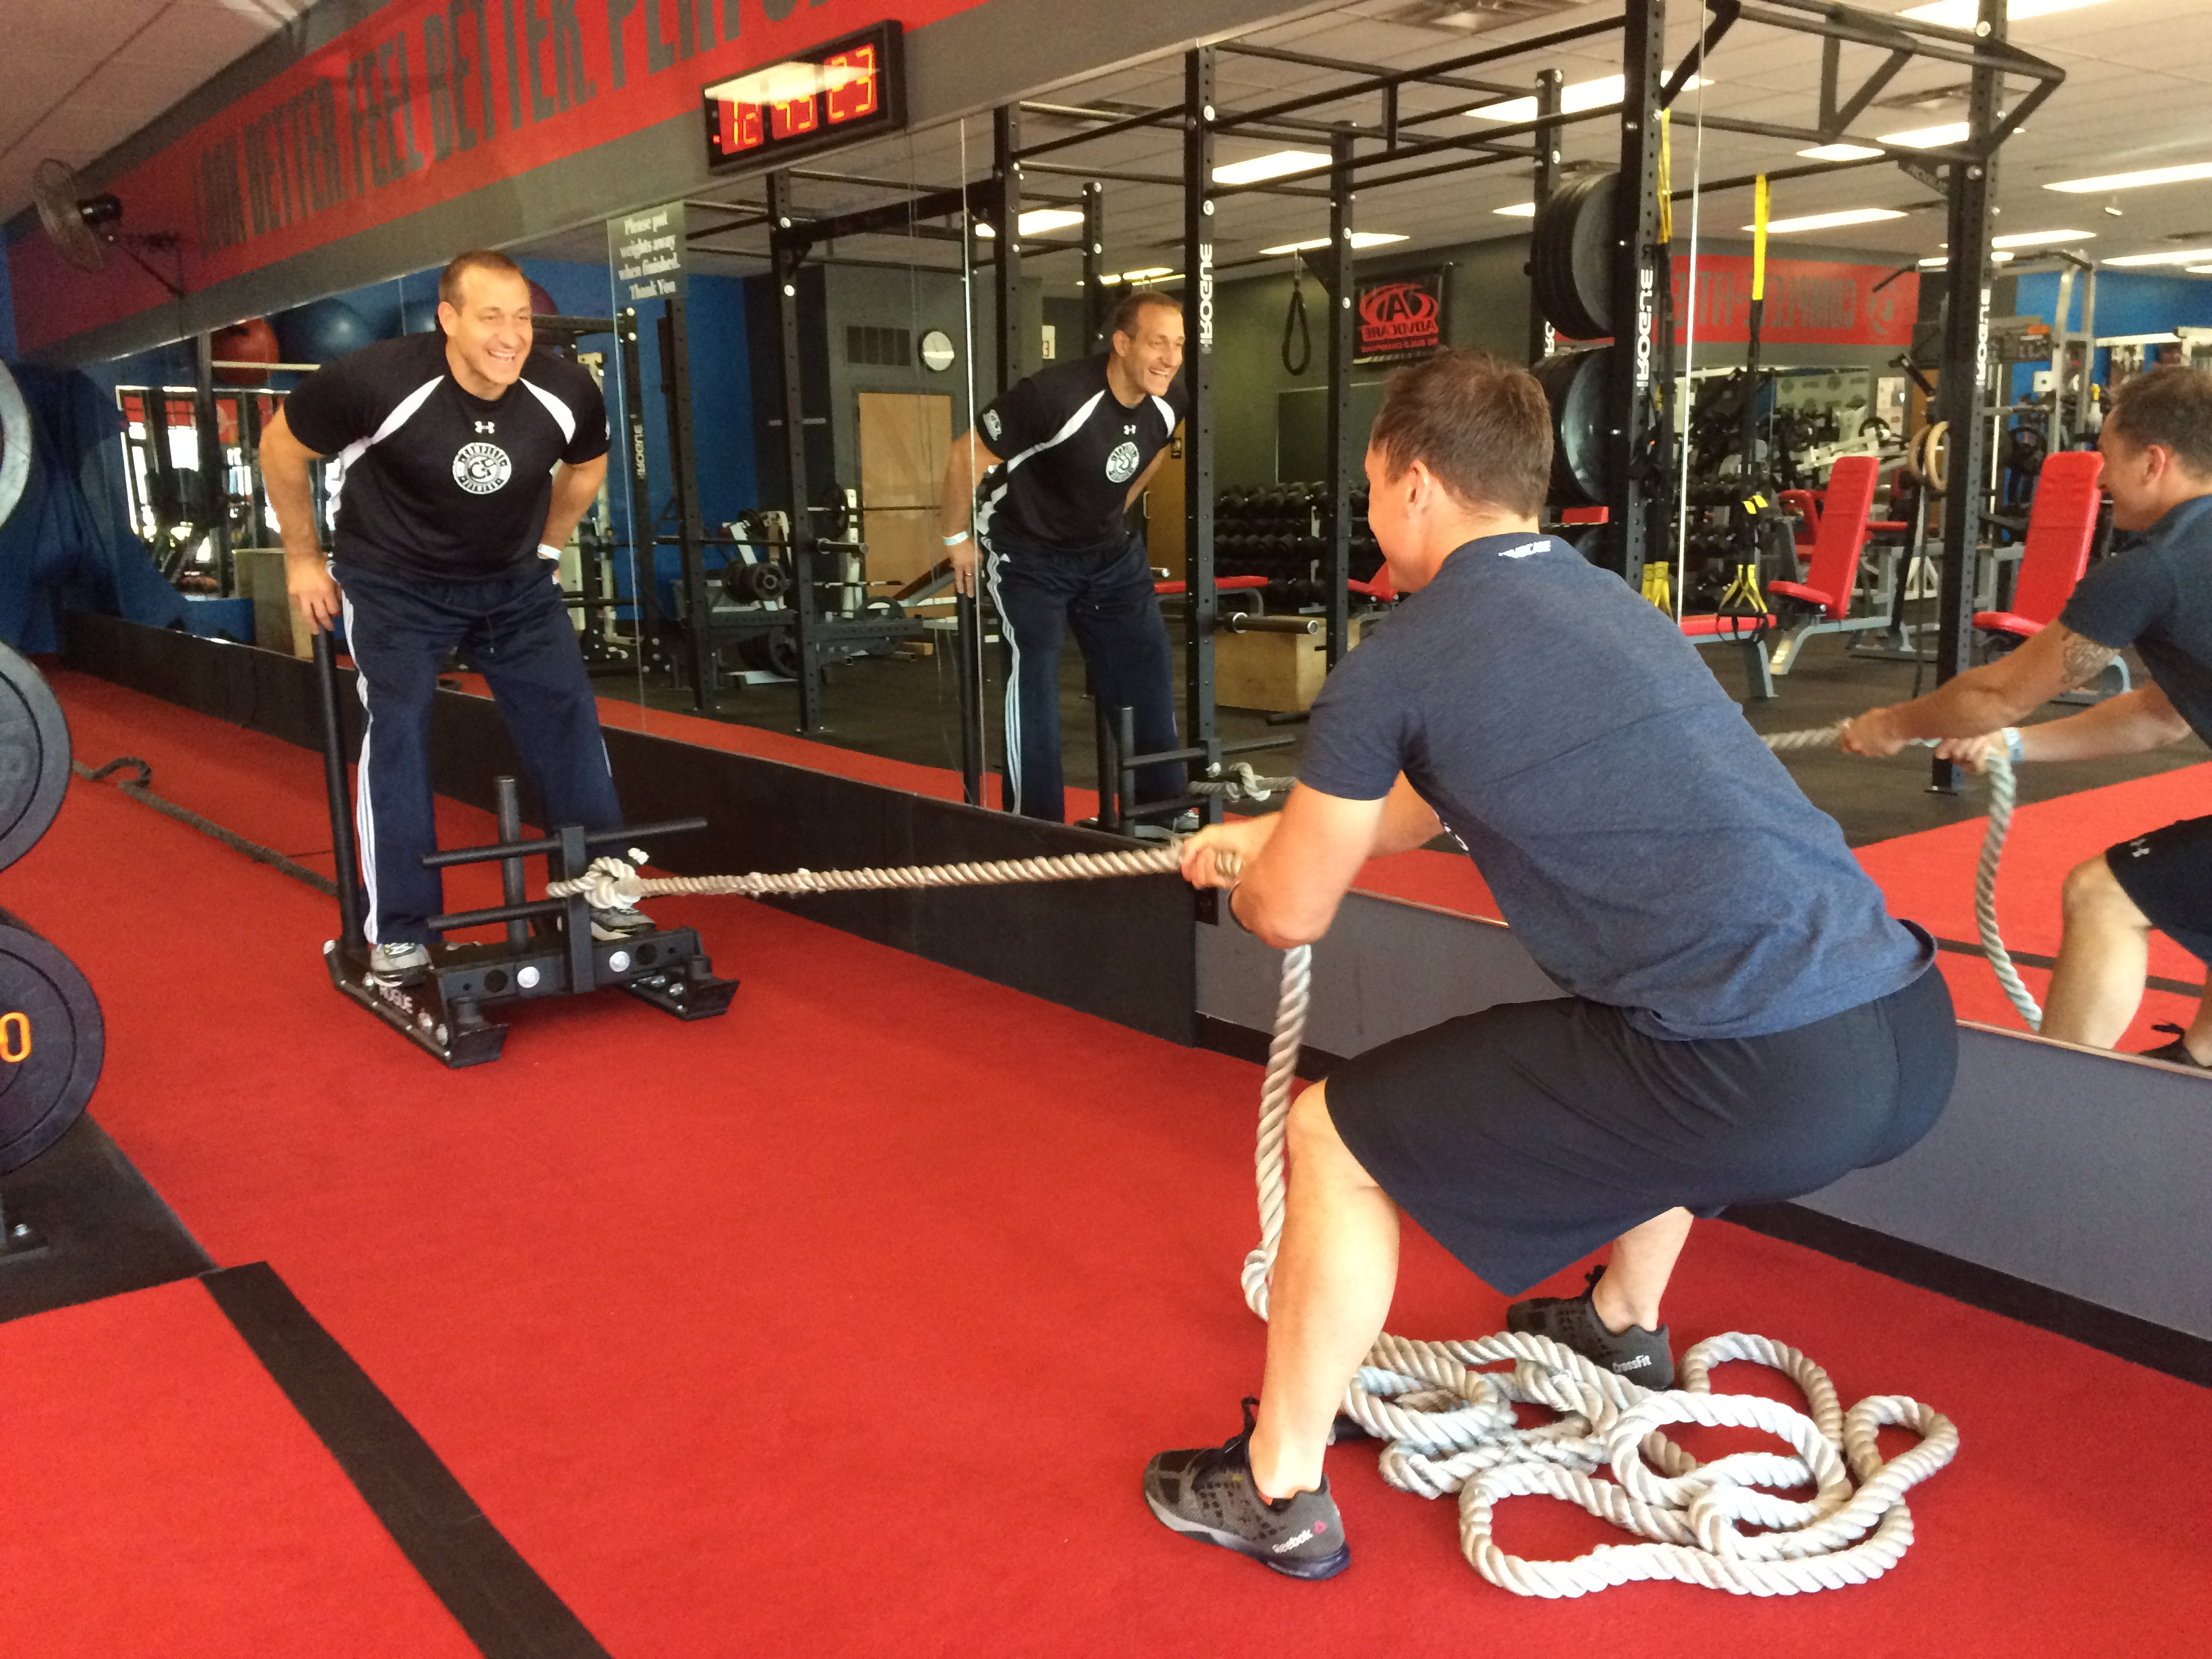 sled rope pull a trainer favorite complete fitness